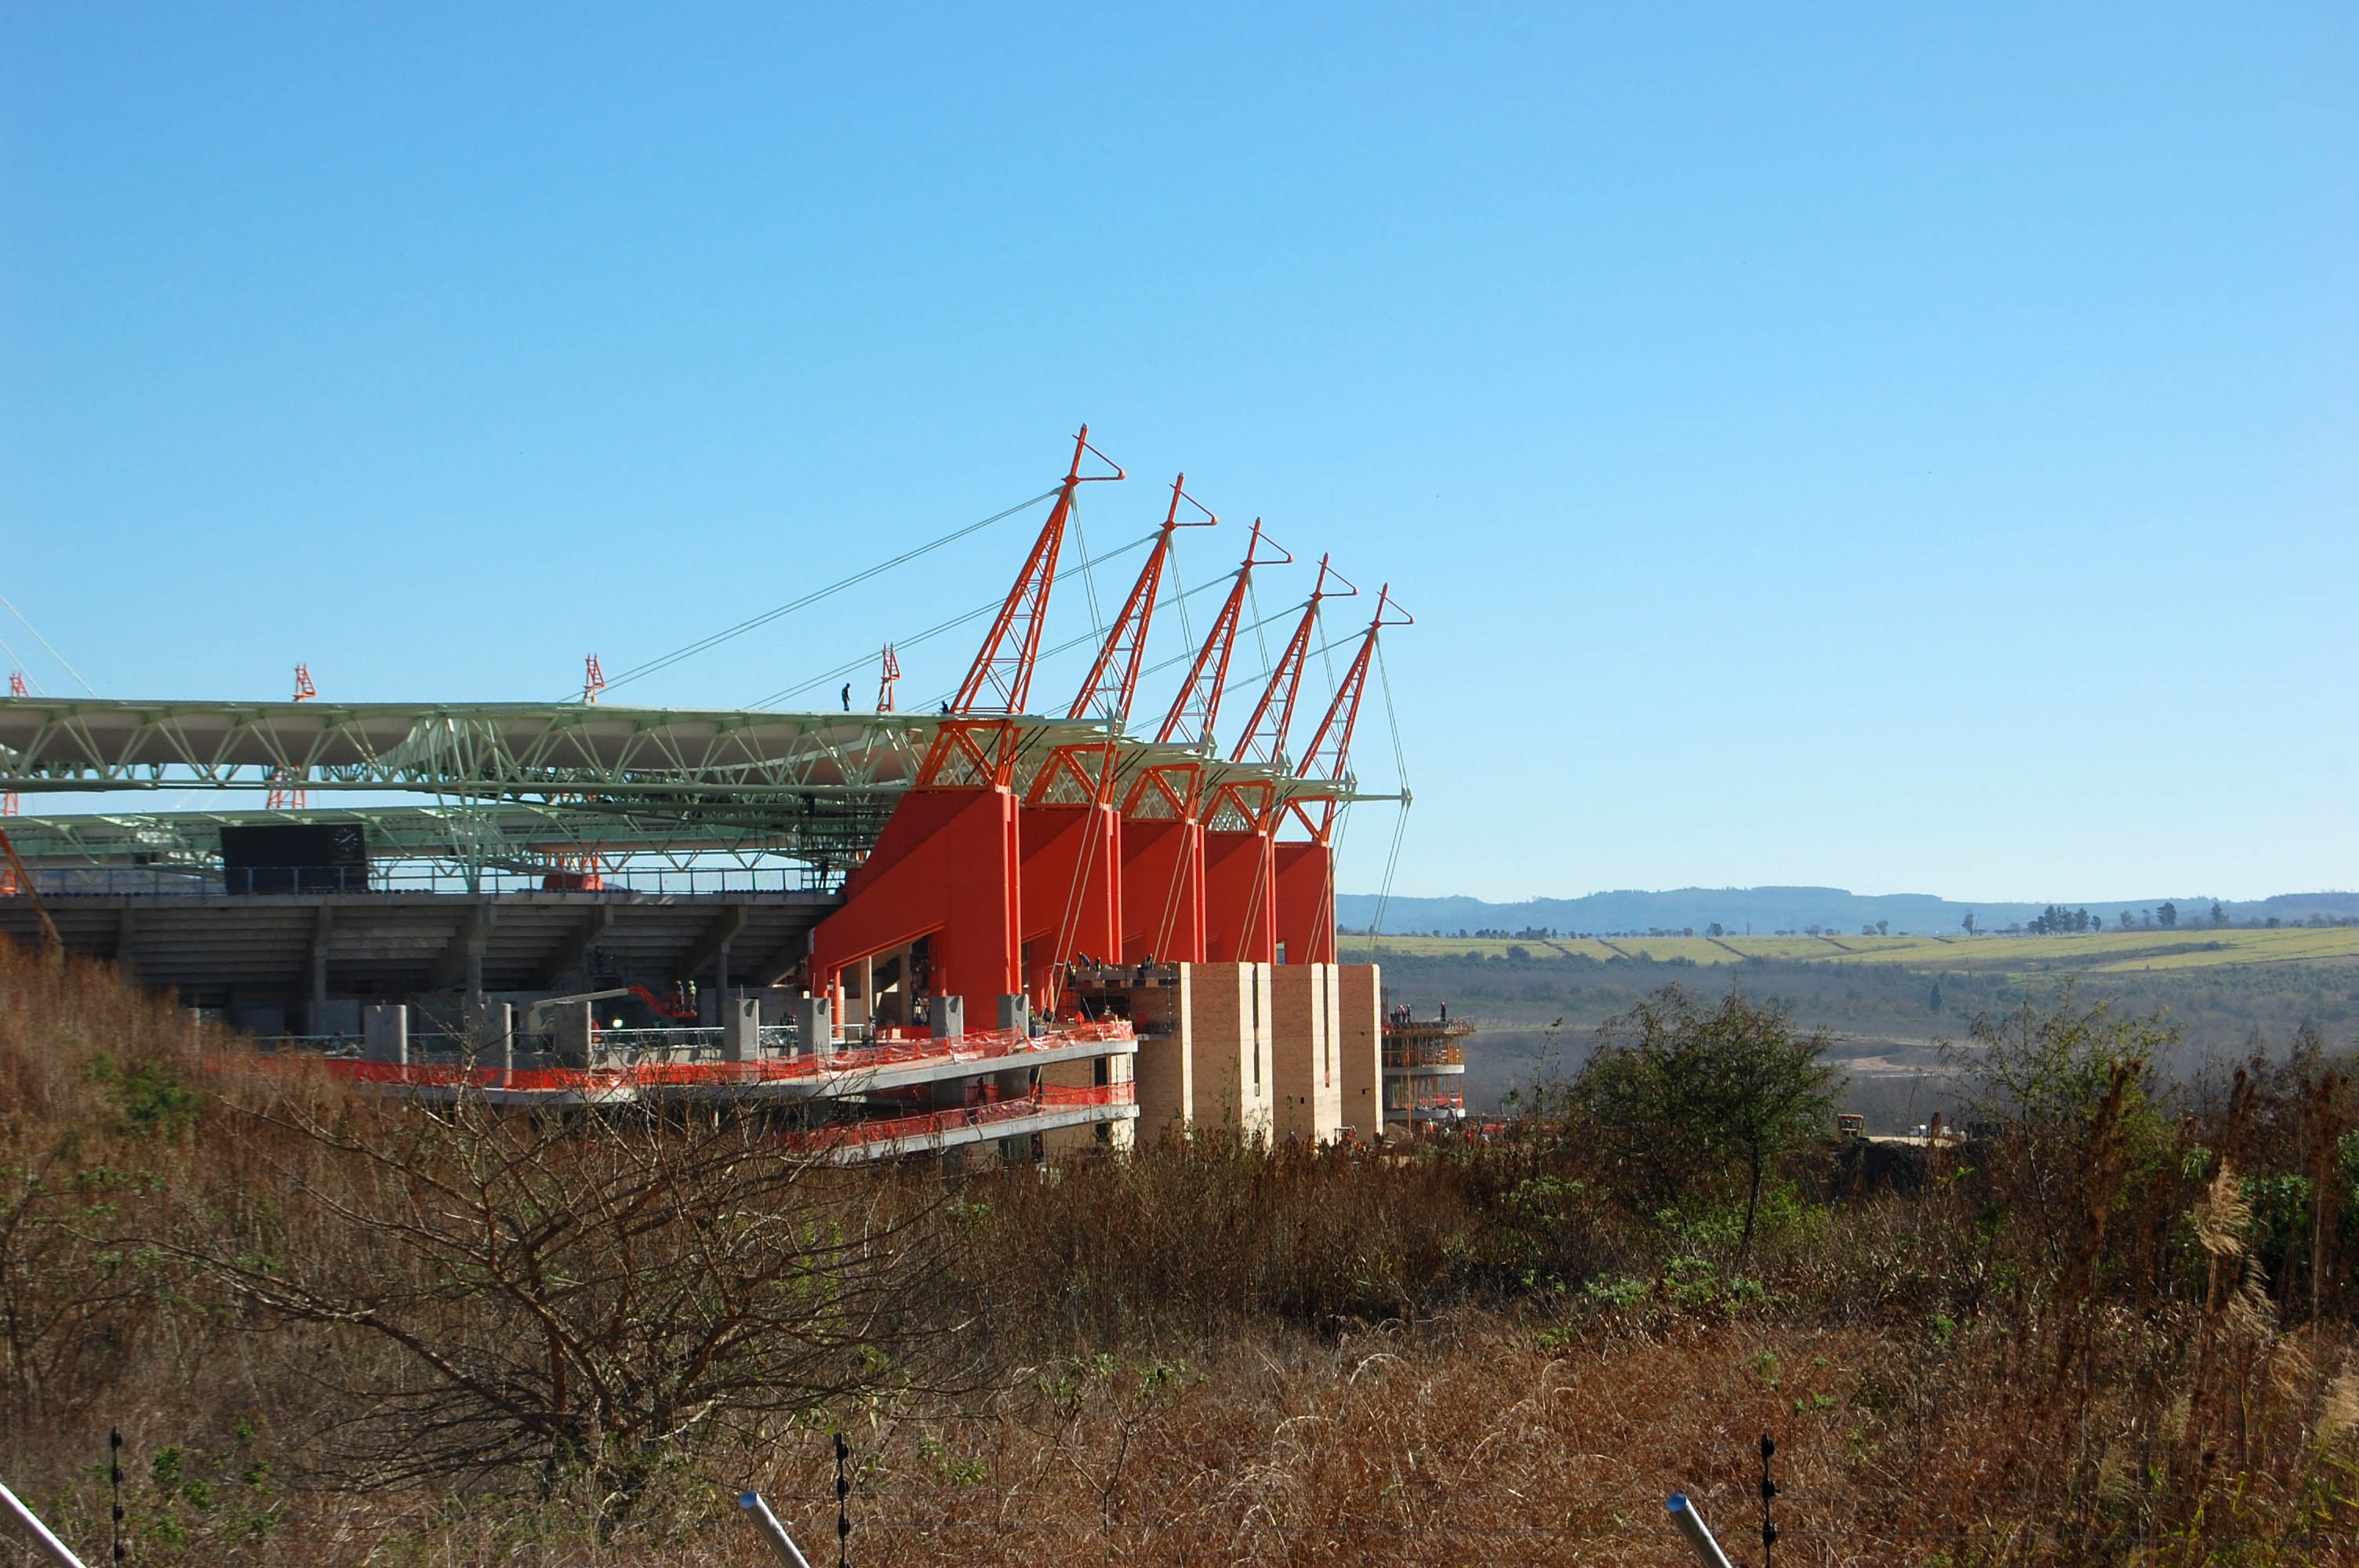 view of the stadium from a distance